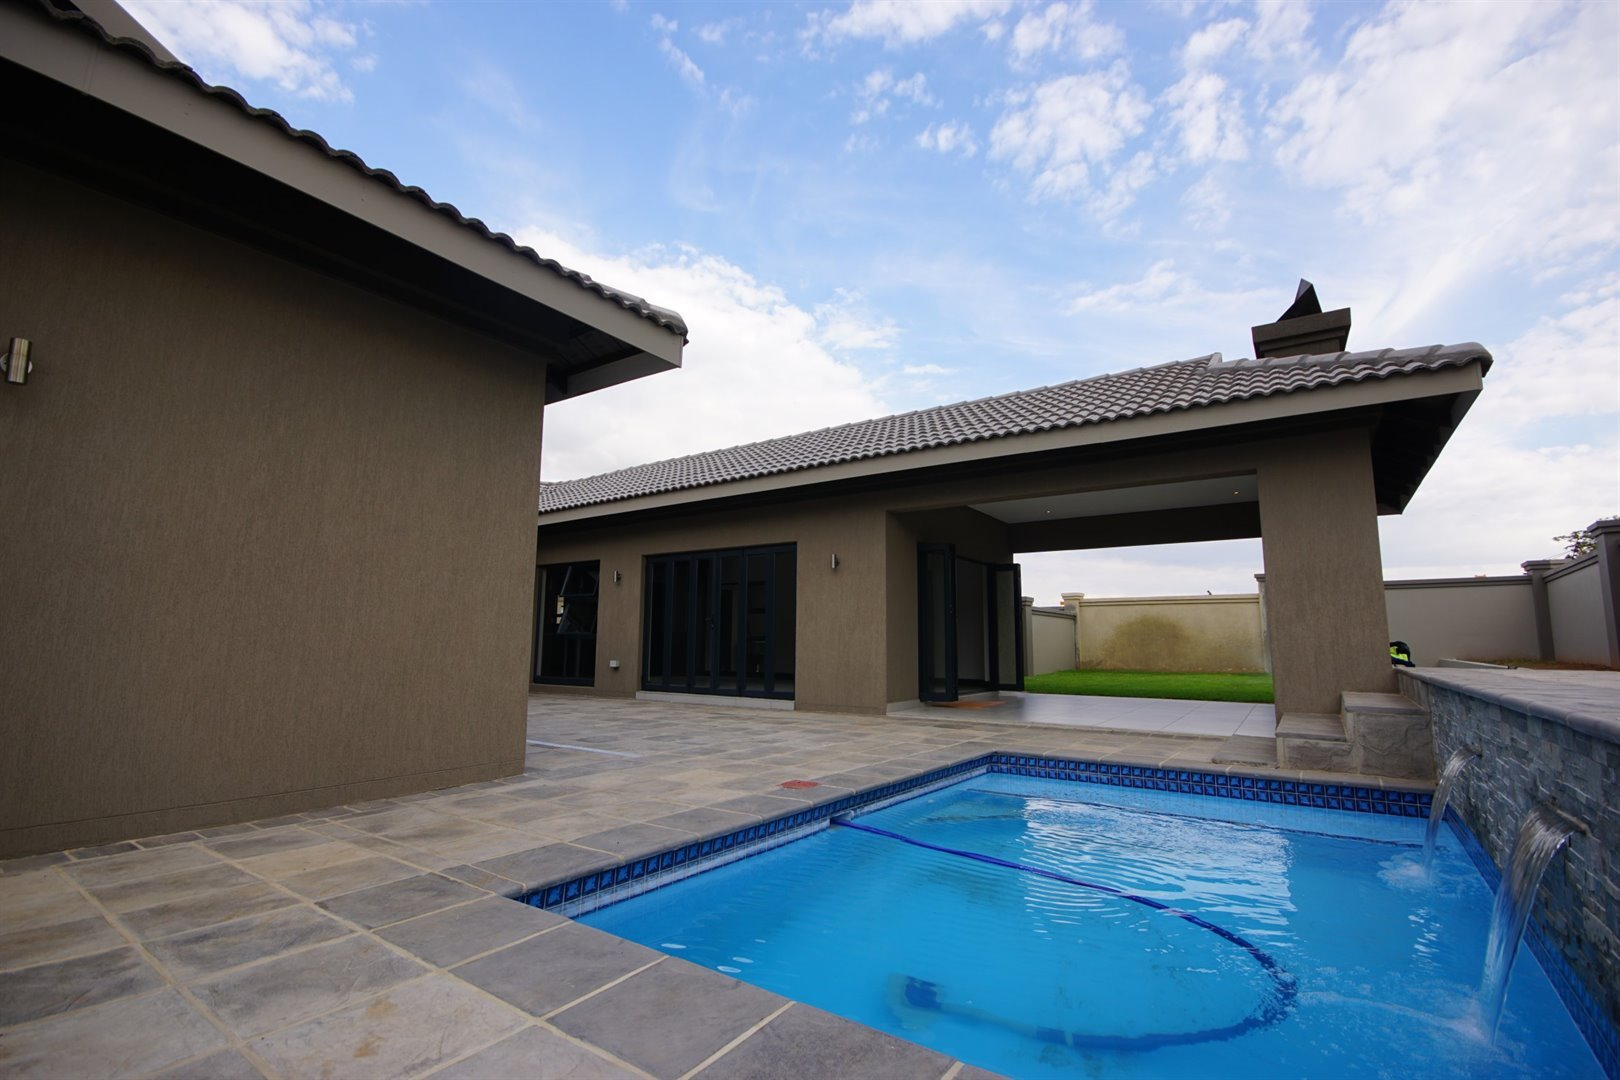 Vereeniging, Three Rivers East Property  | Houses For Sale Three Rivers East, Three Rivers East, House 4 bedrooms property for sale Price:3,450,000